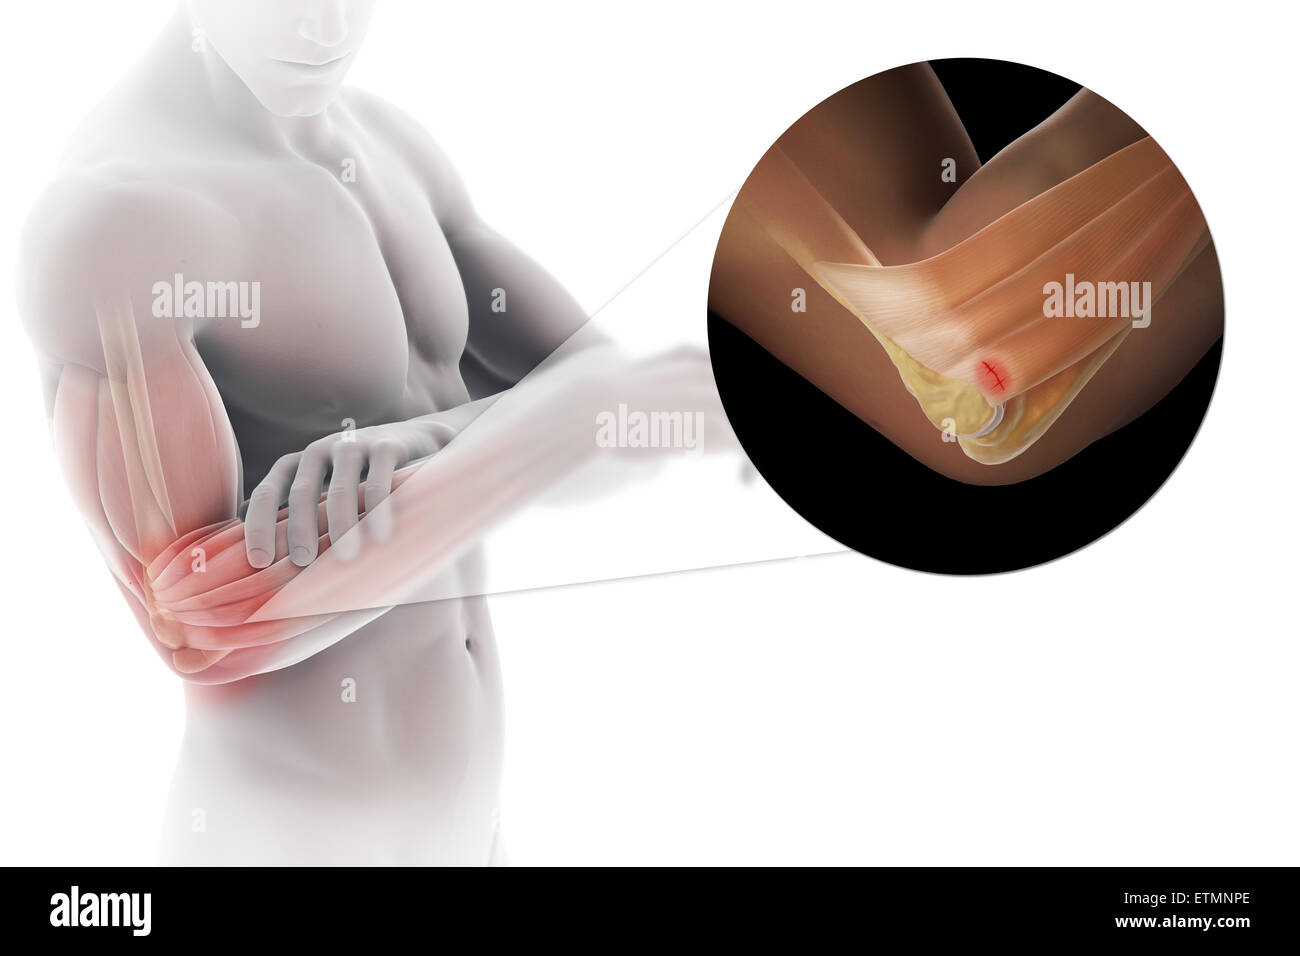 Illustration of the arm with transparent skin to show injury to the lateral epicondyle tendon, known as lateral - Stock Image